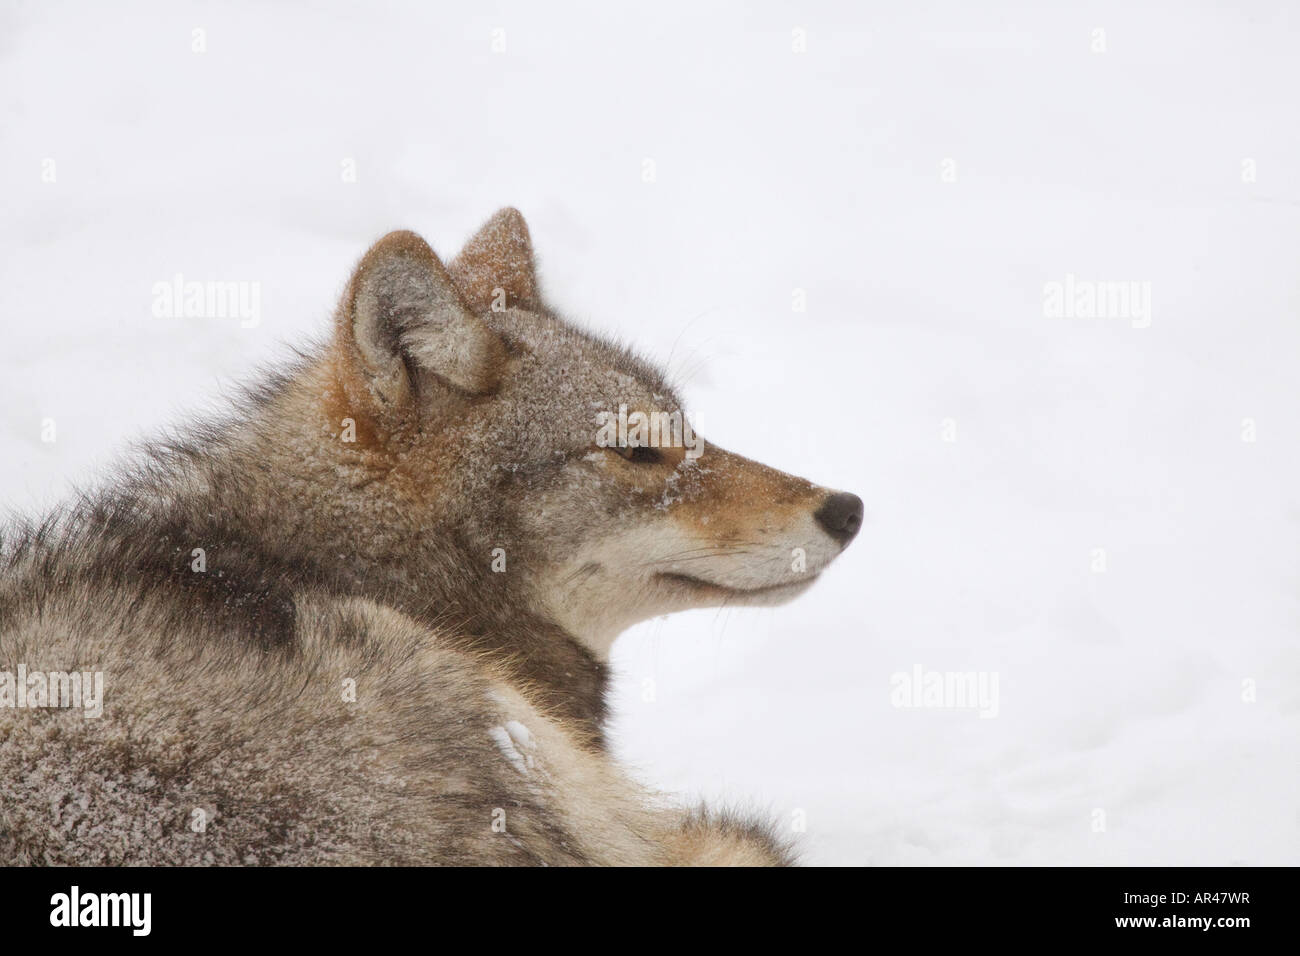 Portrait of Coyote lying in snow, facing right - Stock Image